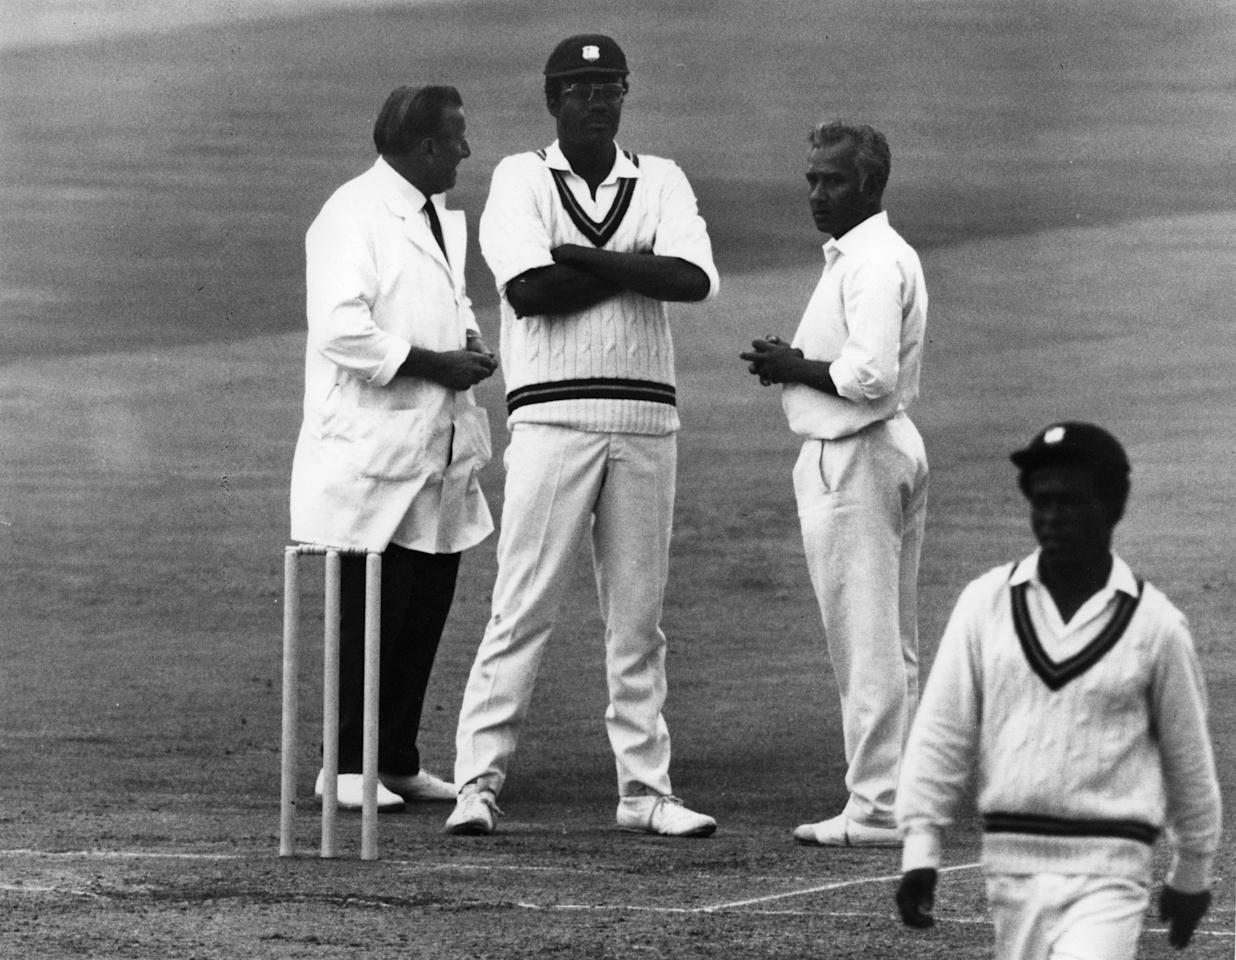 11th August 1973:  Arthur Fagg, the umpire who walked out of a match at Edgbaston, chats amiably with Rohan Kanhai, the West Indies skipper and one of the people he'd argued with.  (Photo by Central Press/Getty Images)